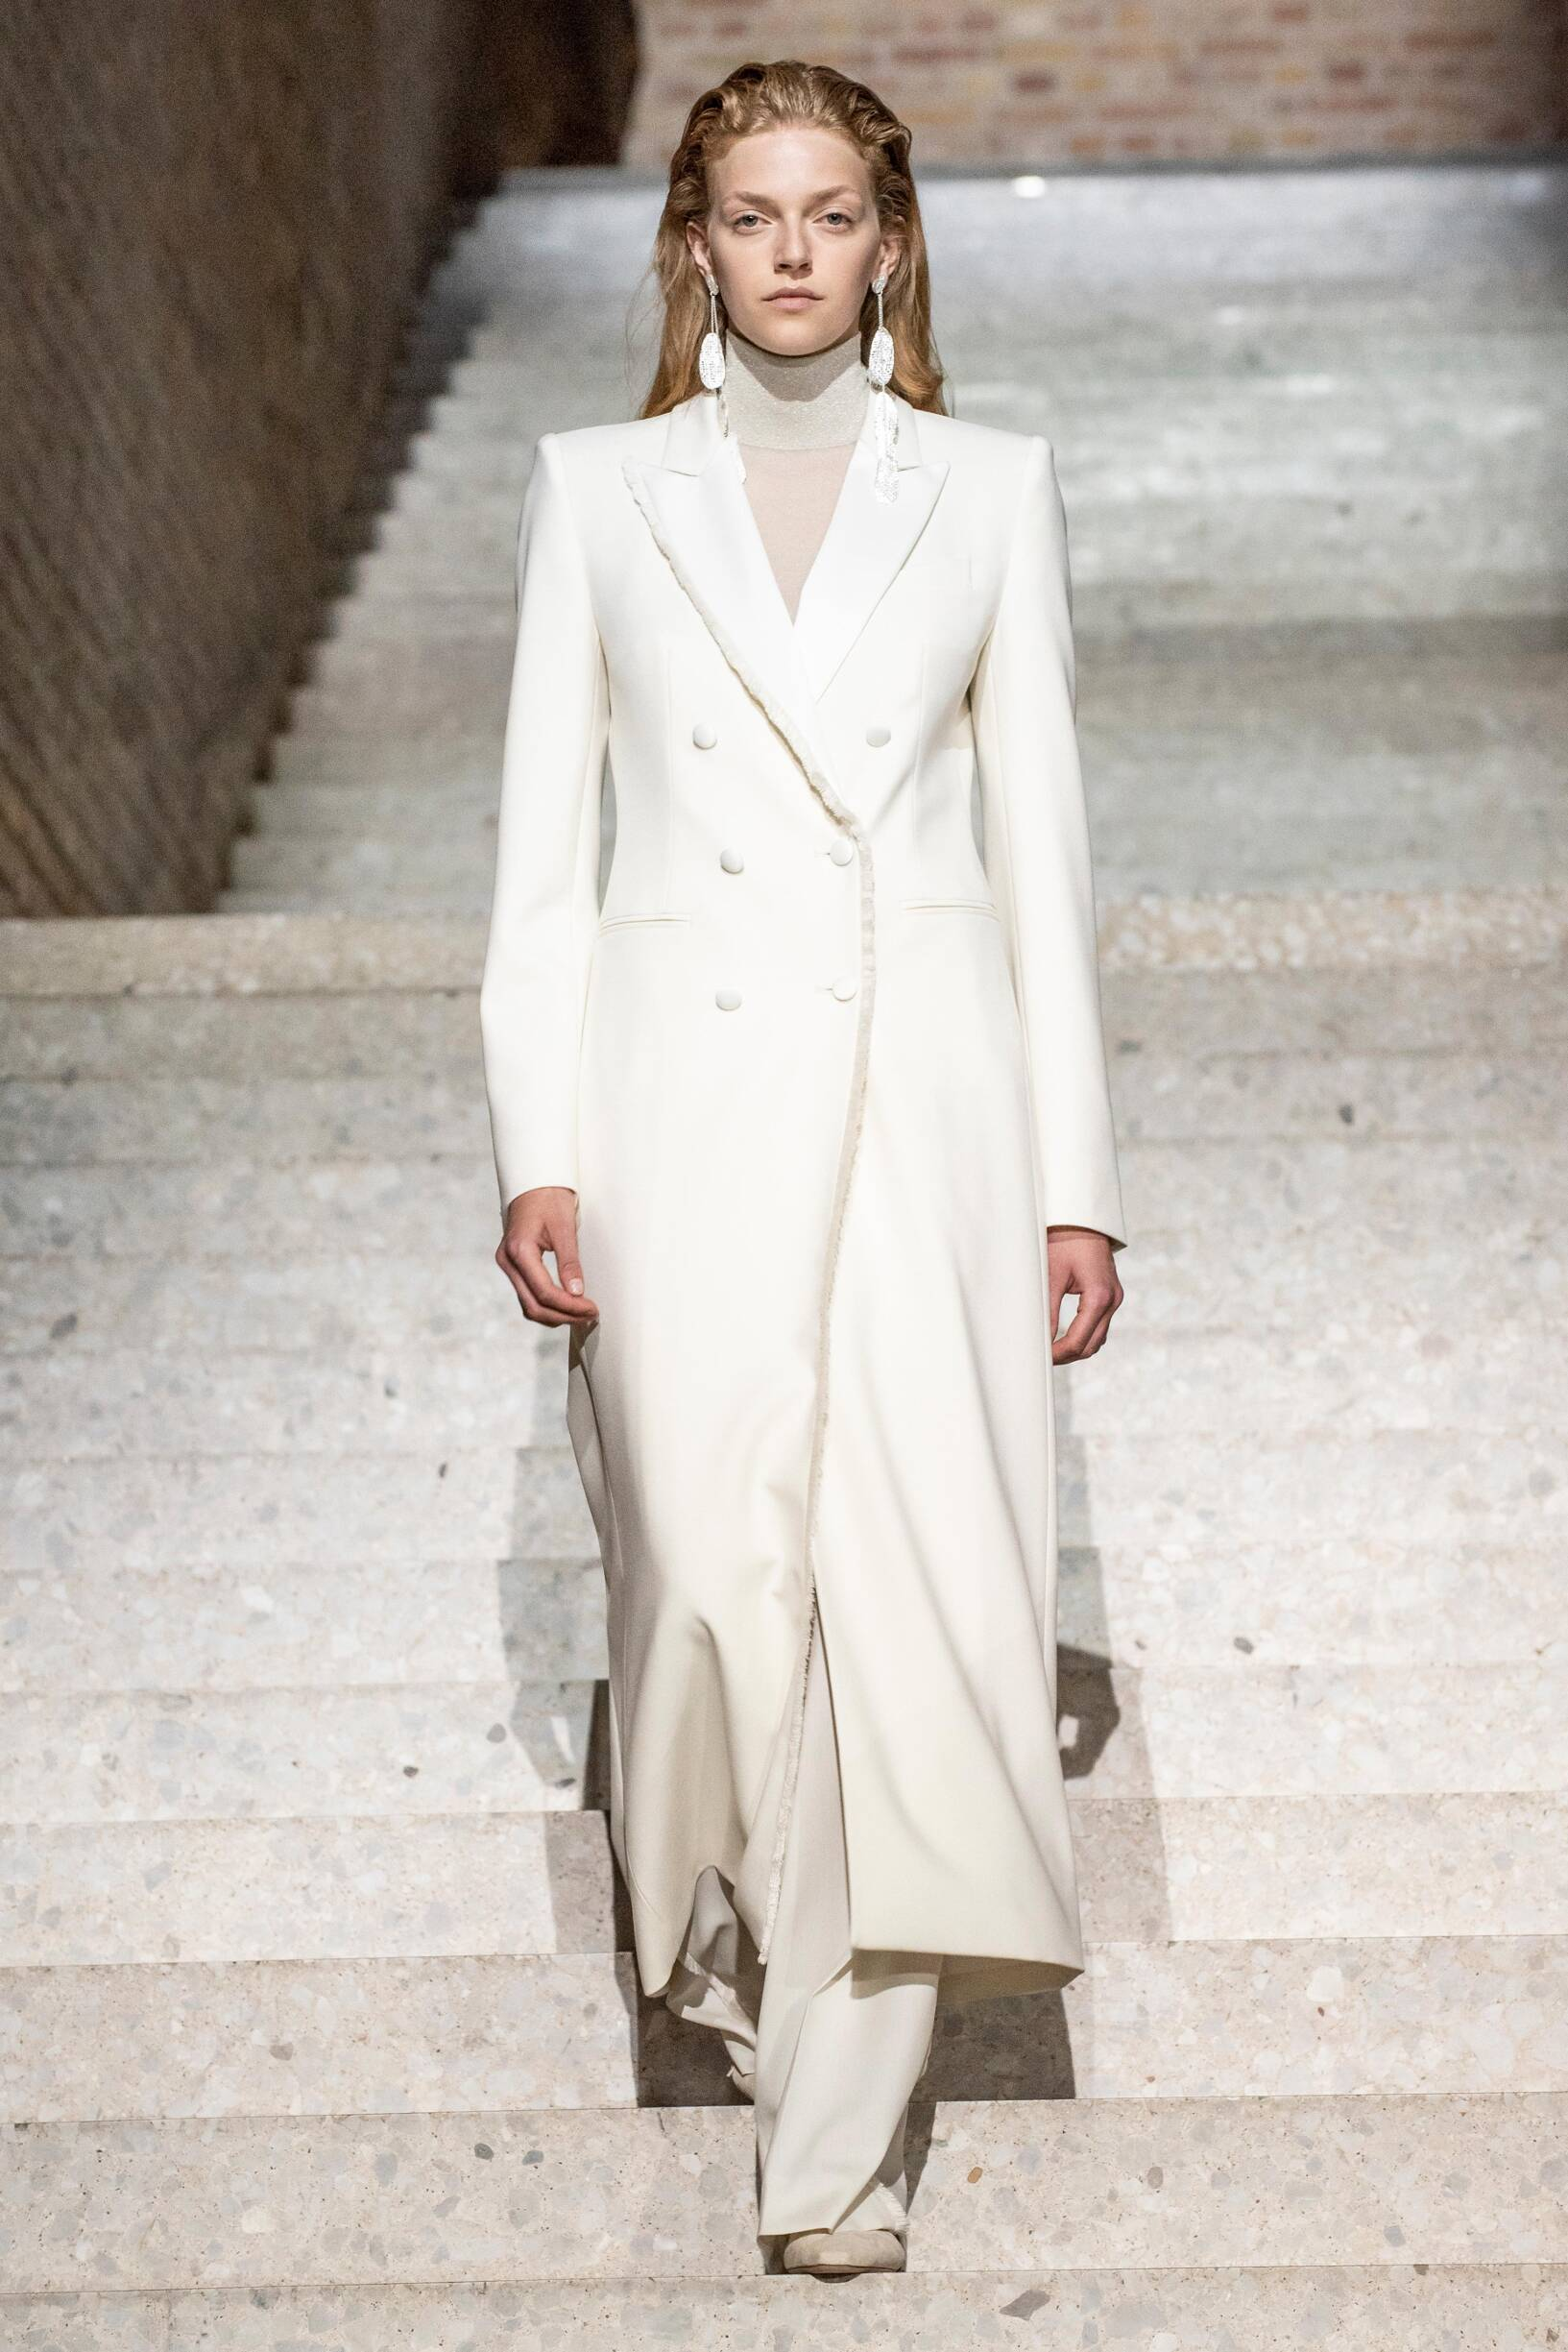 Max Mara Resort 2020 Collection Look 39 Berlin